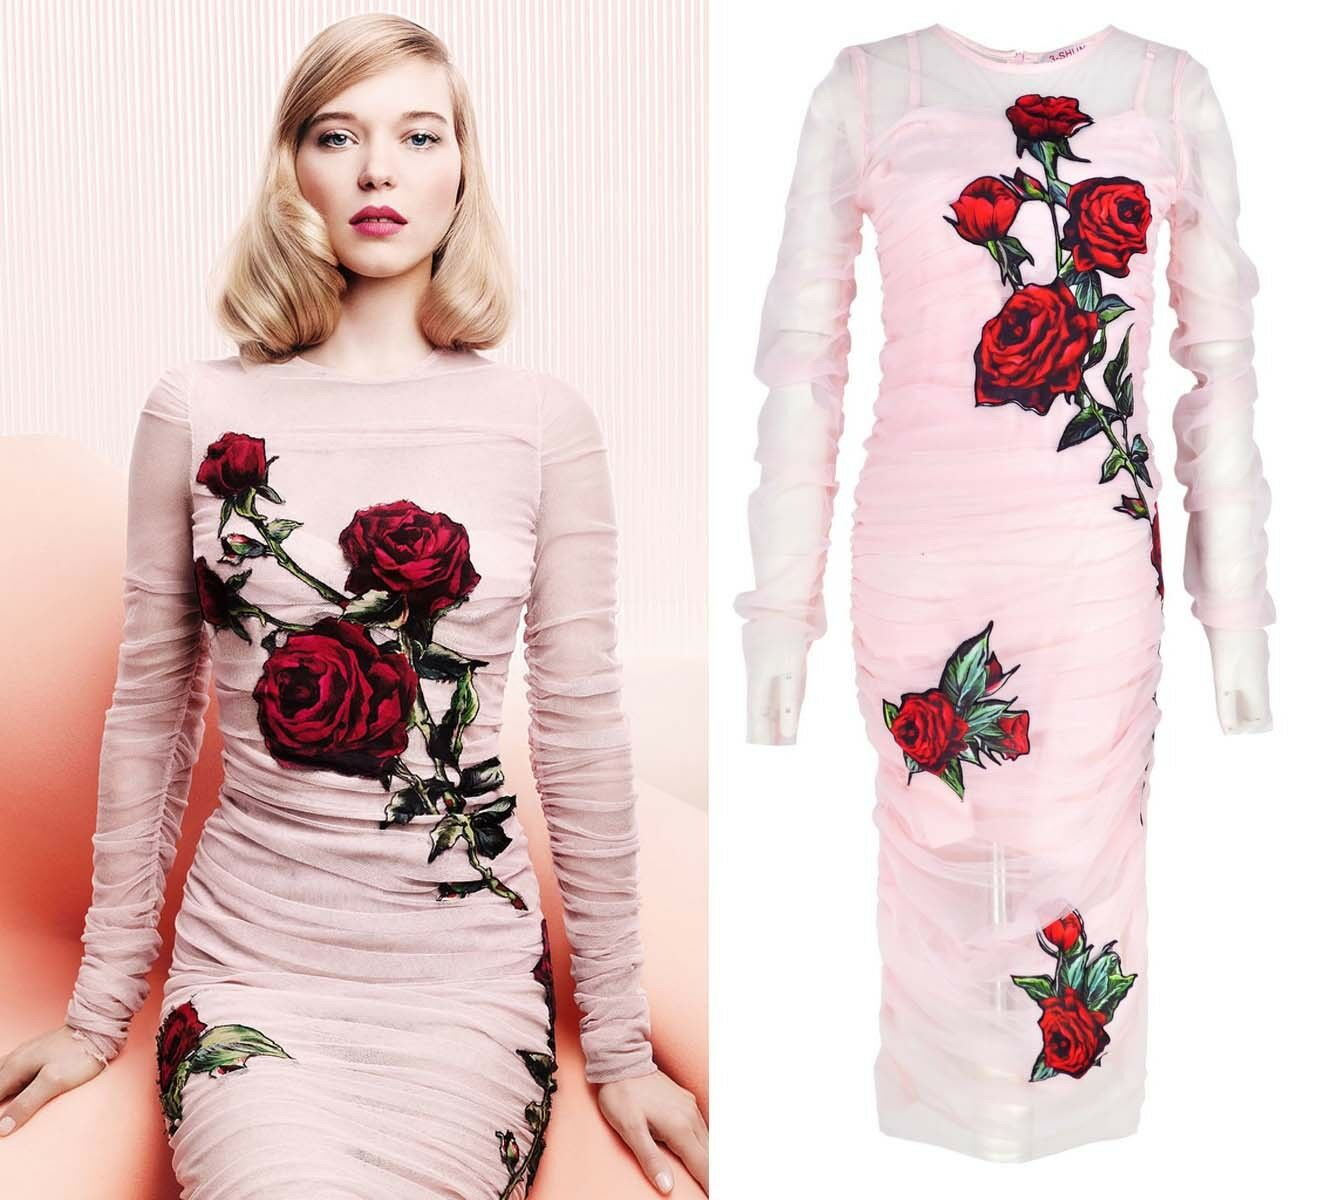 Rosa Applique Patches Ruched Draped Tulle Sheath Rosa Dress Bodycon Sheer Midi